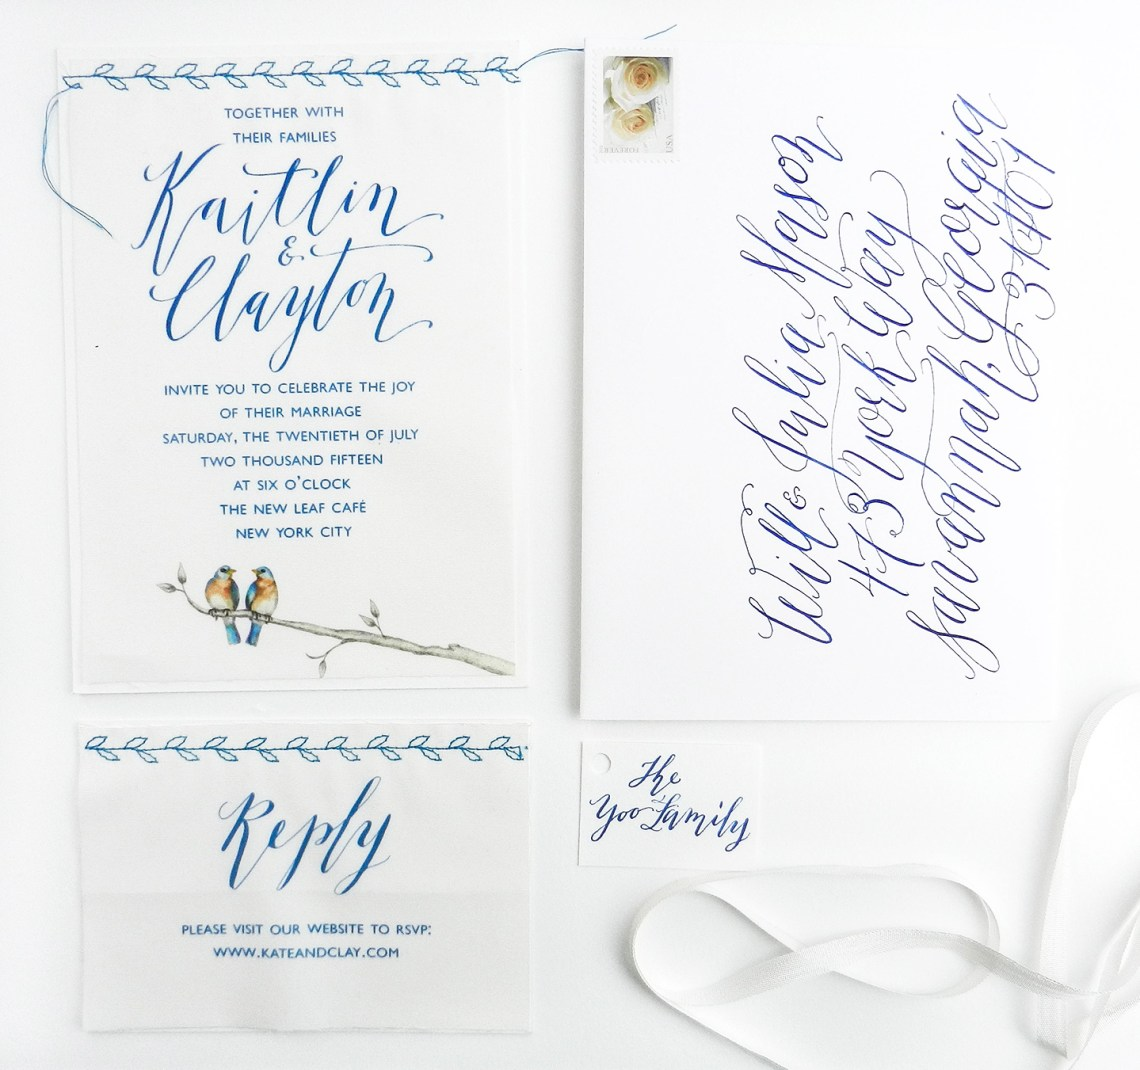 Kaitlin Style Calligraphy Worksheet The Postman 39 S Knock